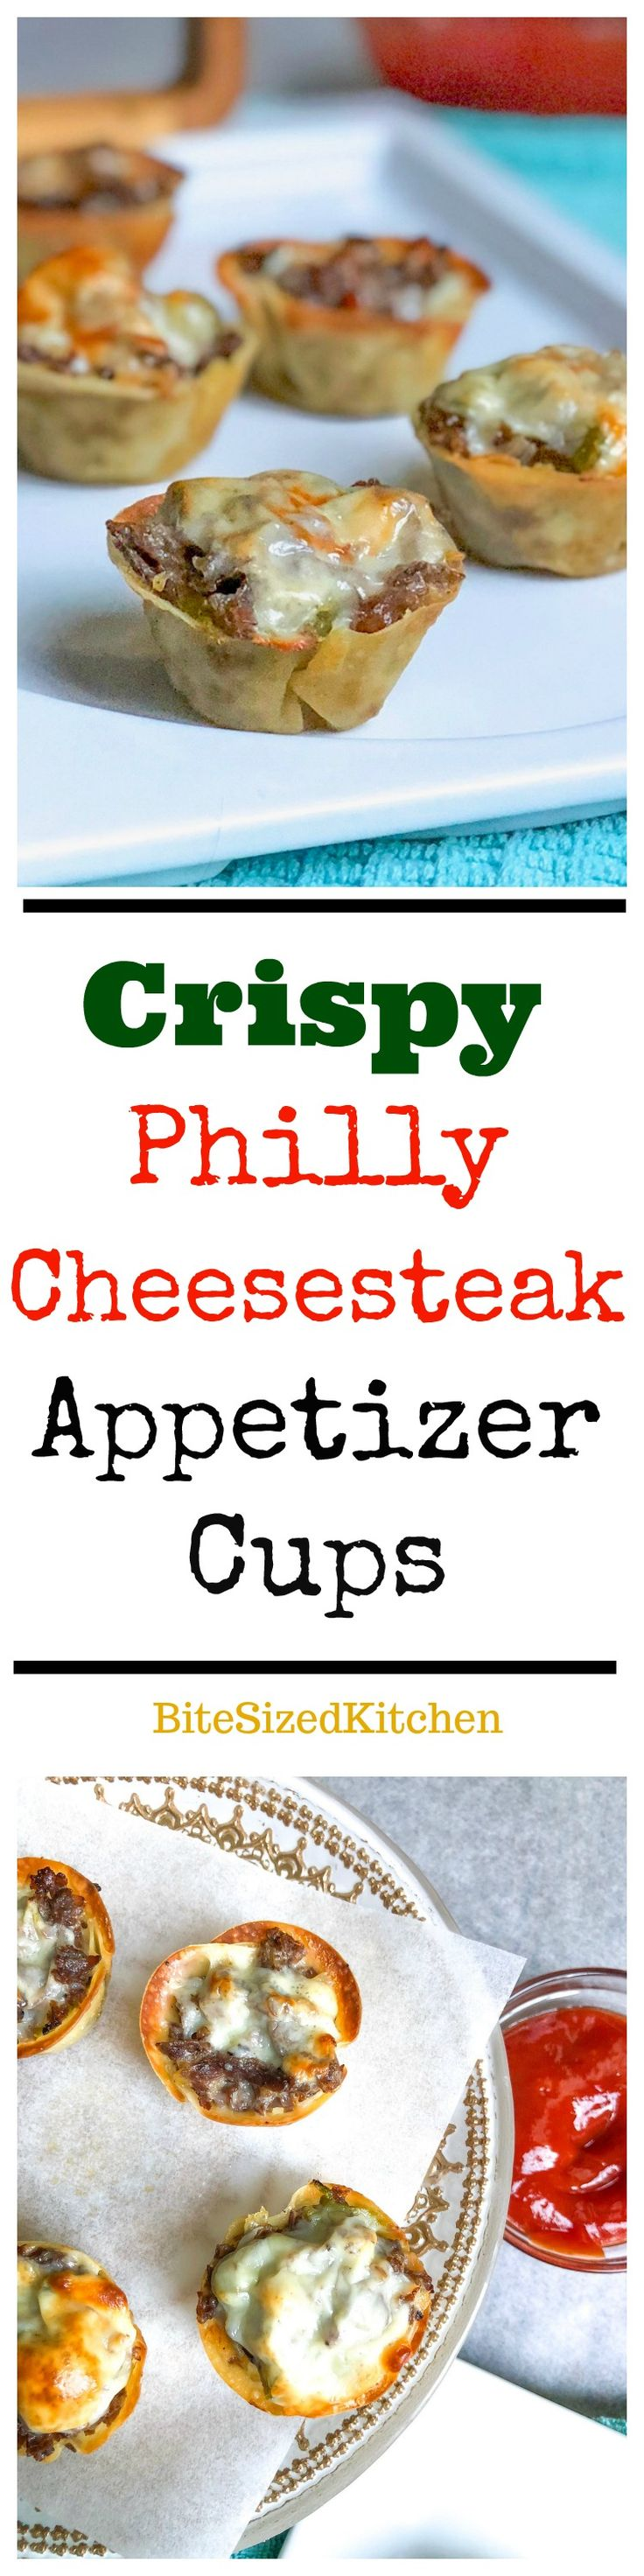 Easy, Tasty Game Day Appetizer! Crispy Philly Cheesesteak Appetizer Cups using wonton wrappers! The ideal football recipe!